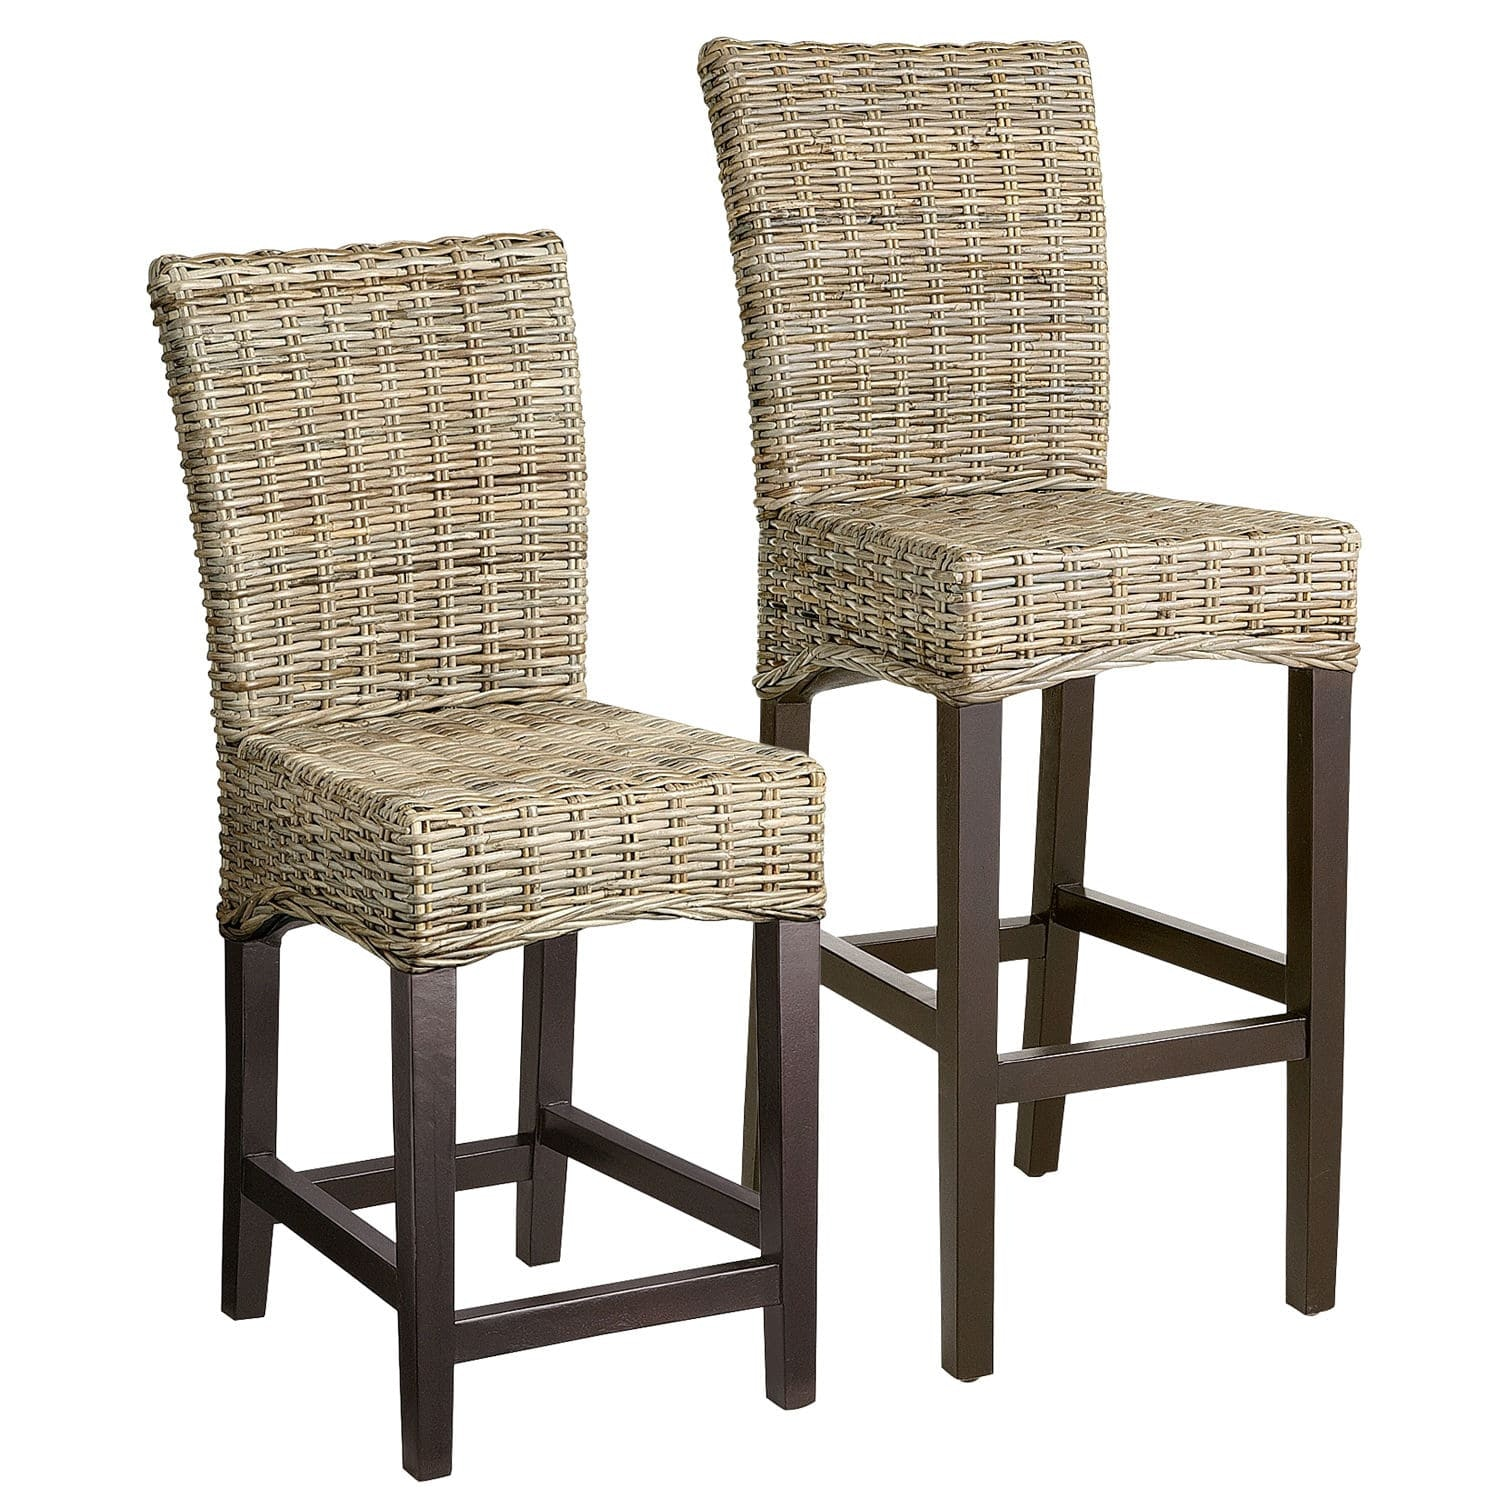 Pier One Wicker Furniture | Basket Chairs Pier One | Pier One Imports Patio Furniture